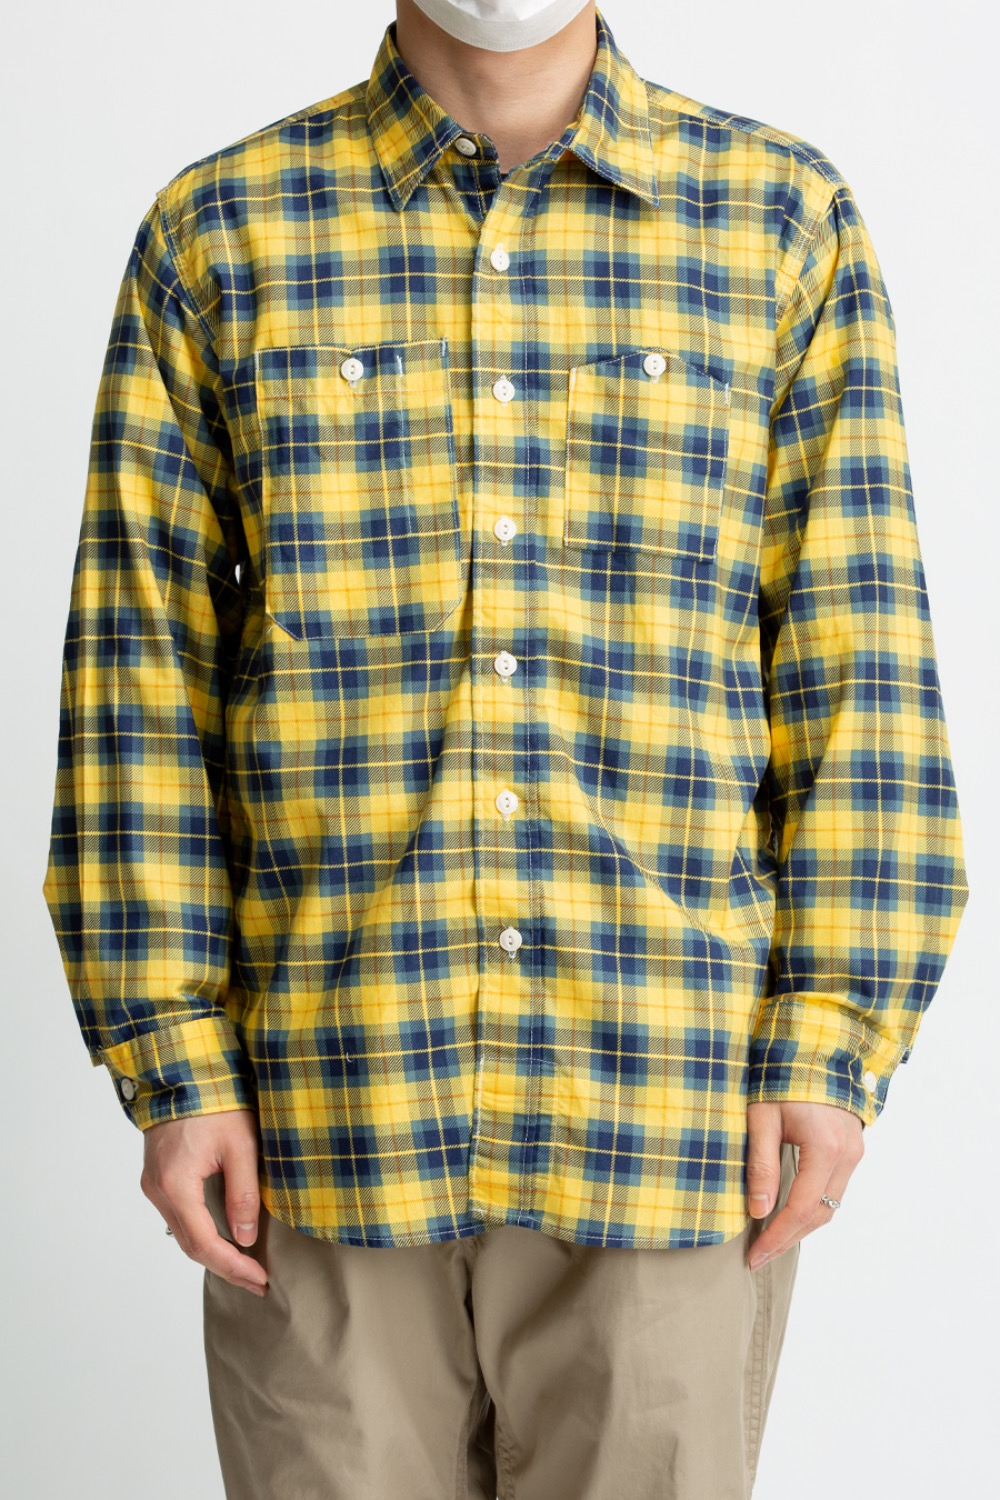 WORK SHIRT YELLOW/NAVY COTTON PRINTED PLAID